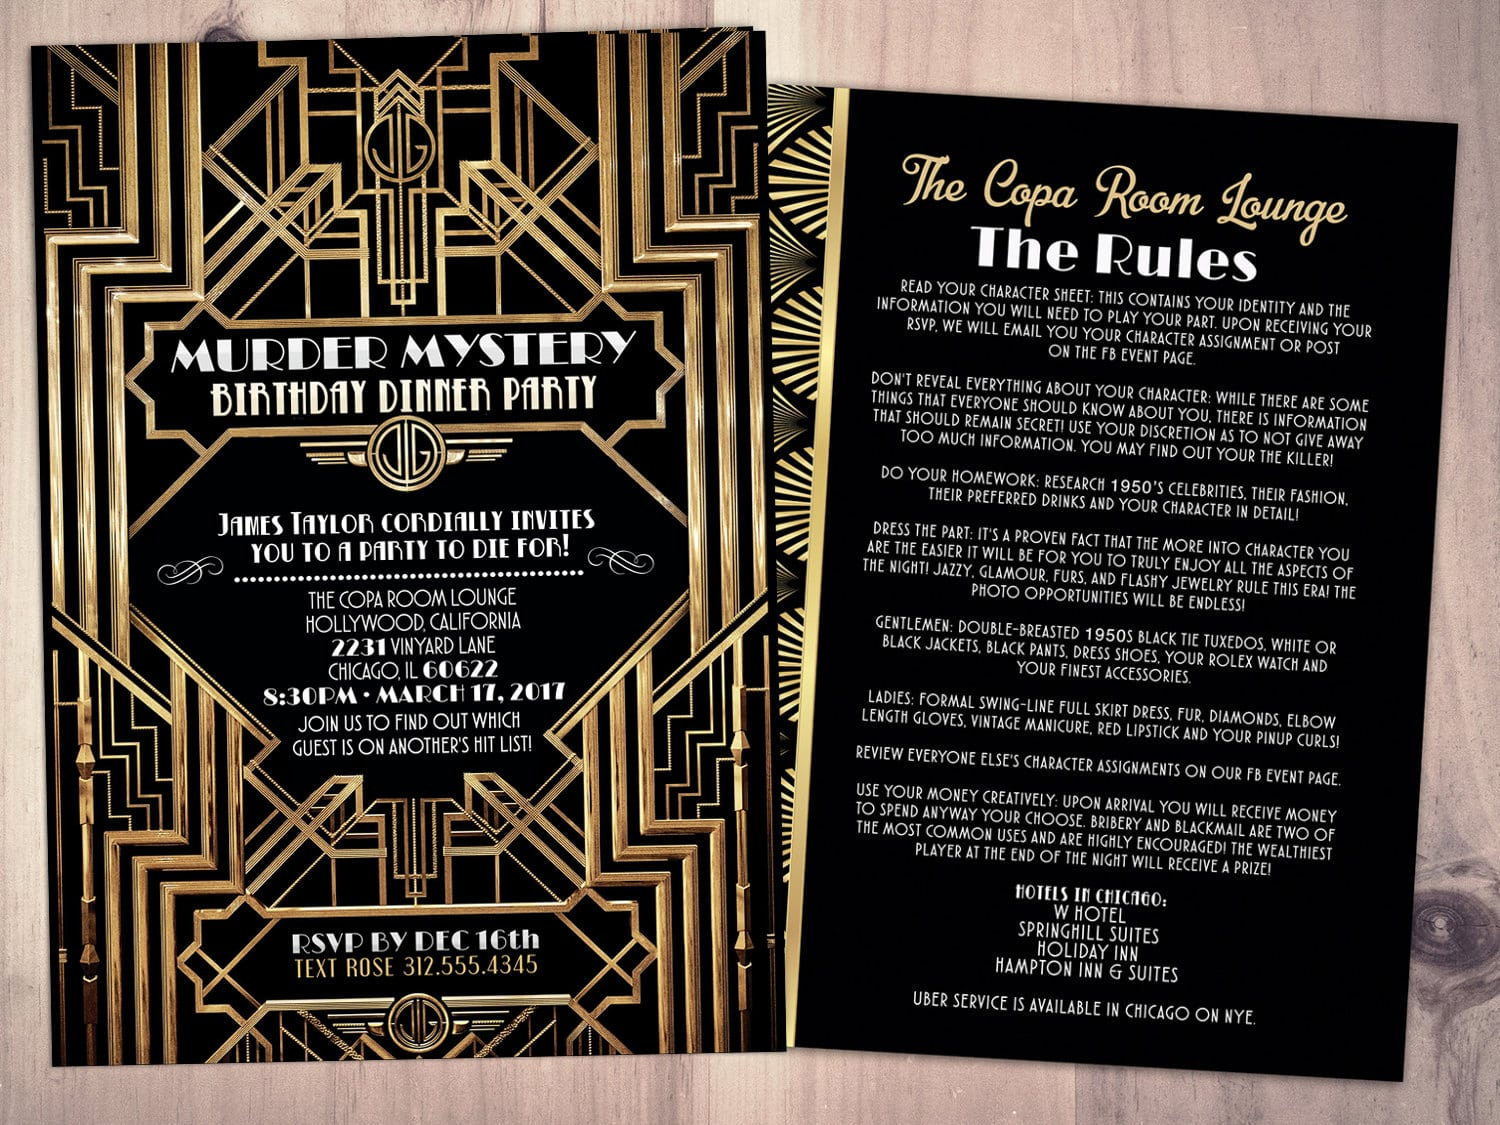 Murder Mystery Dinner Party Invitation Vintage Party